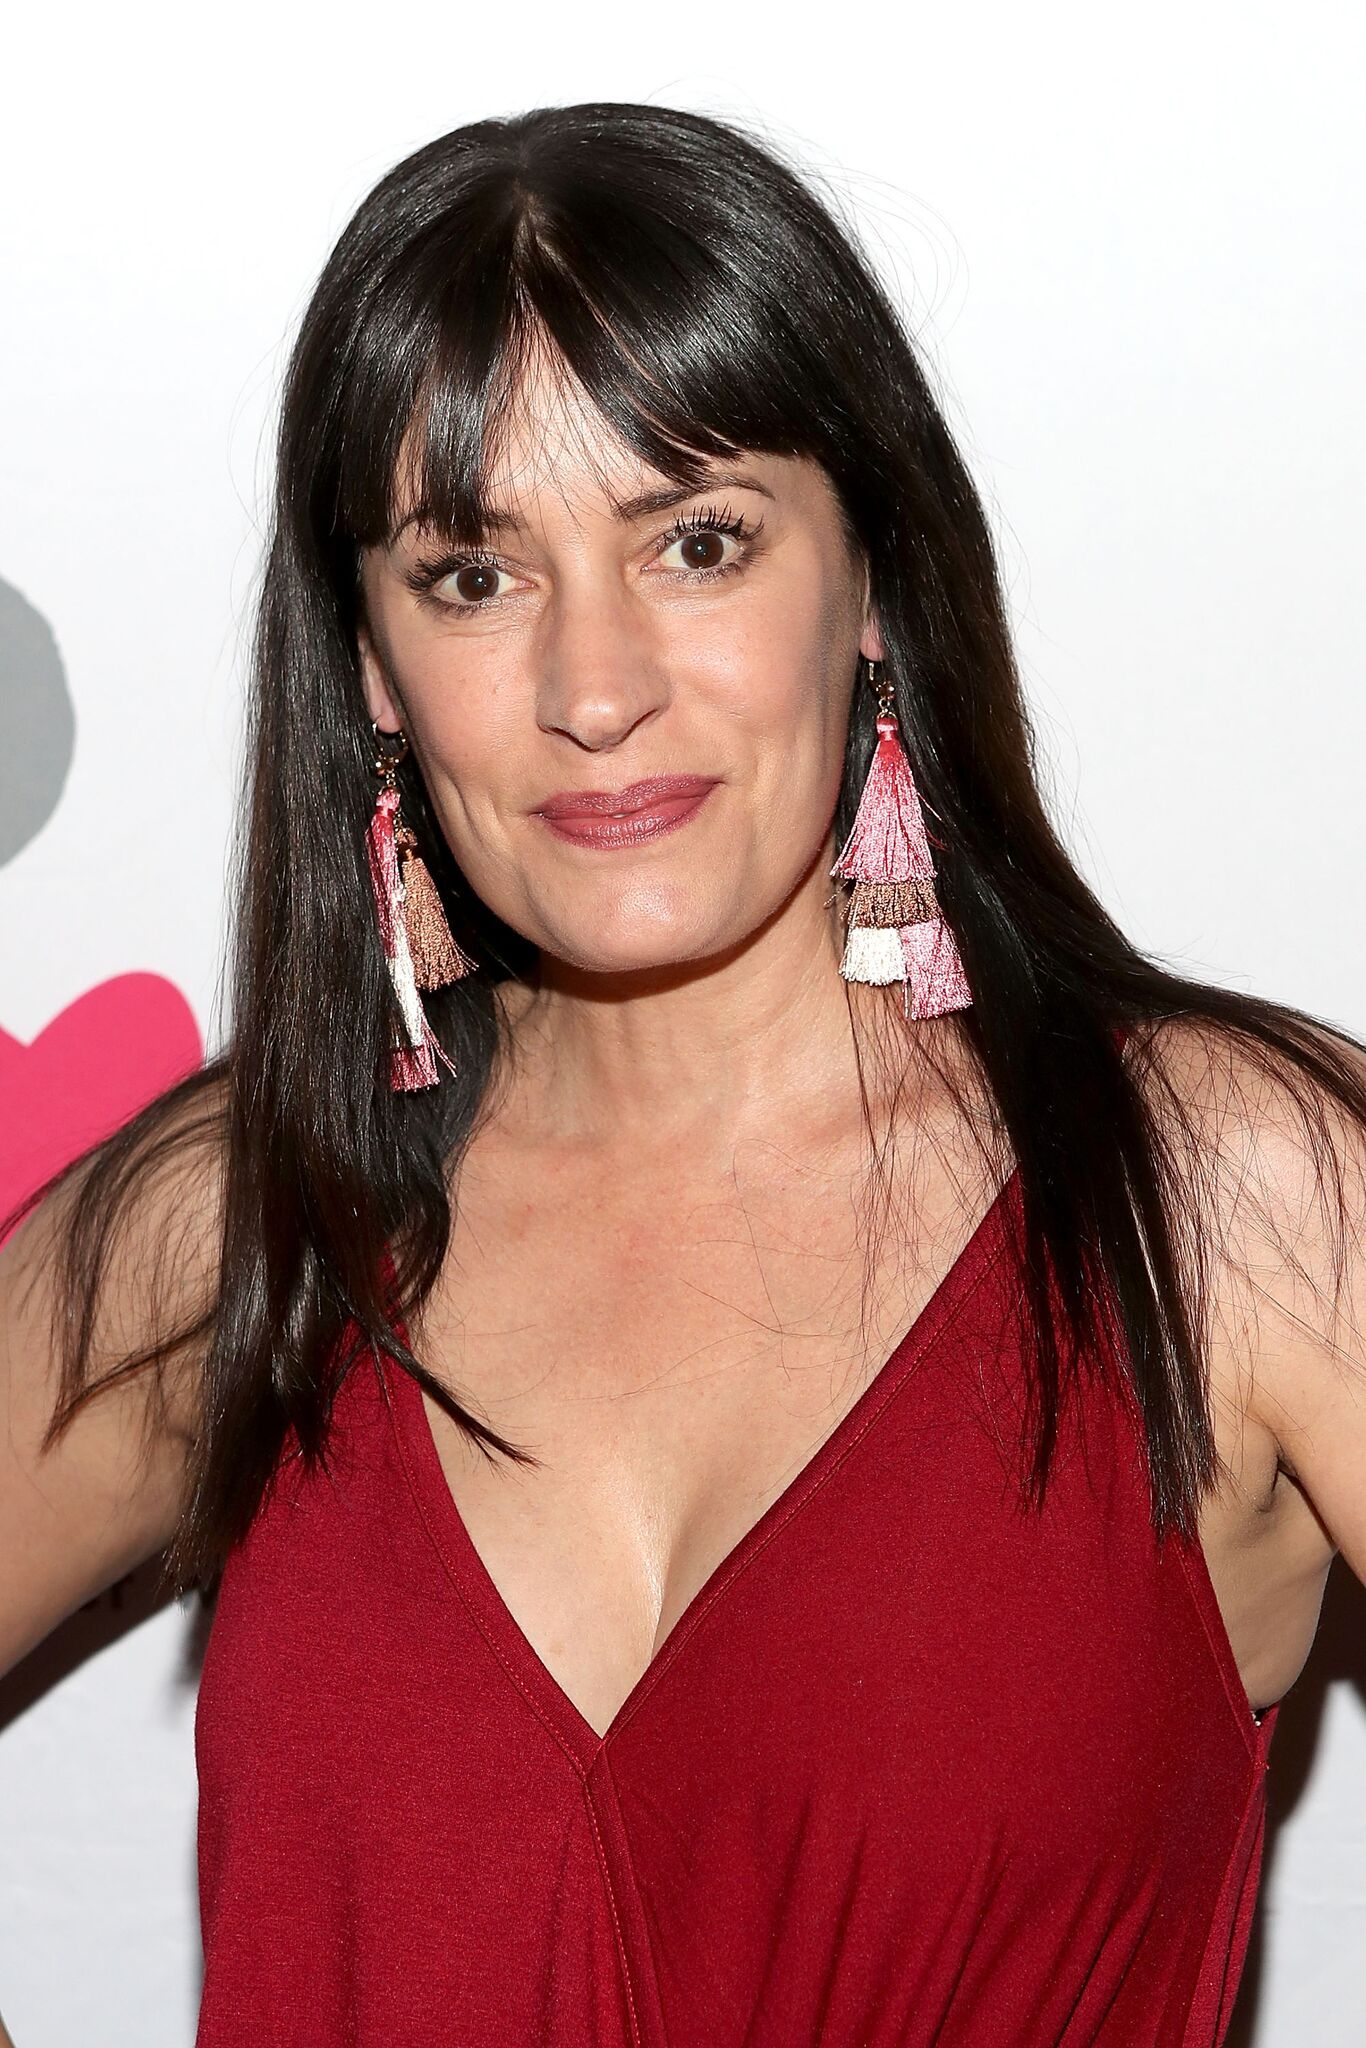 28+ best Images of Paget Brewster - Miran Gallery